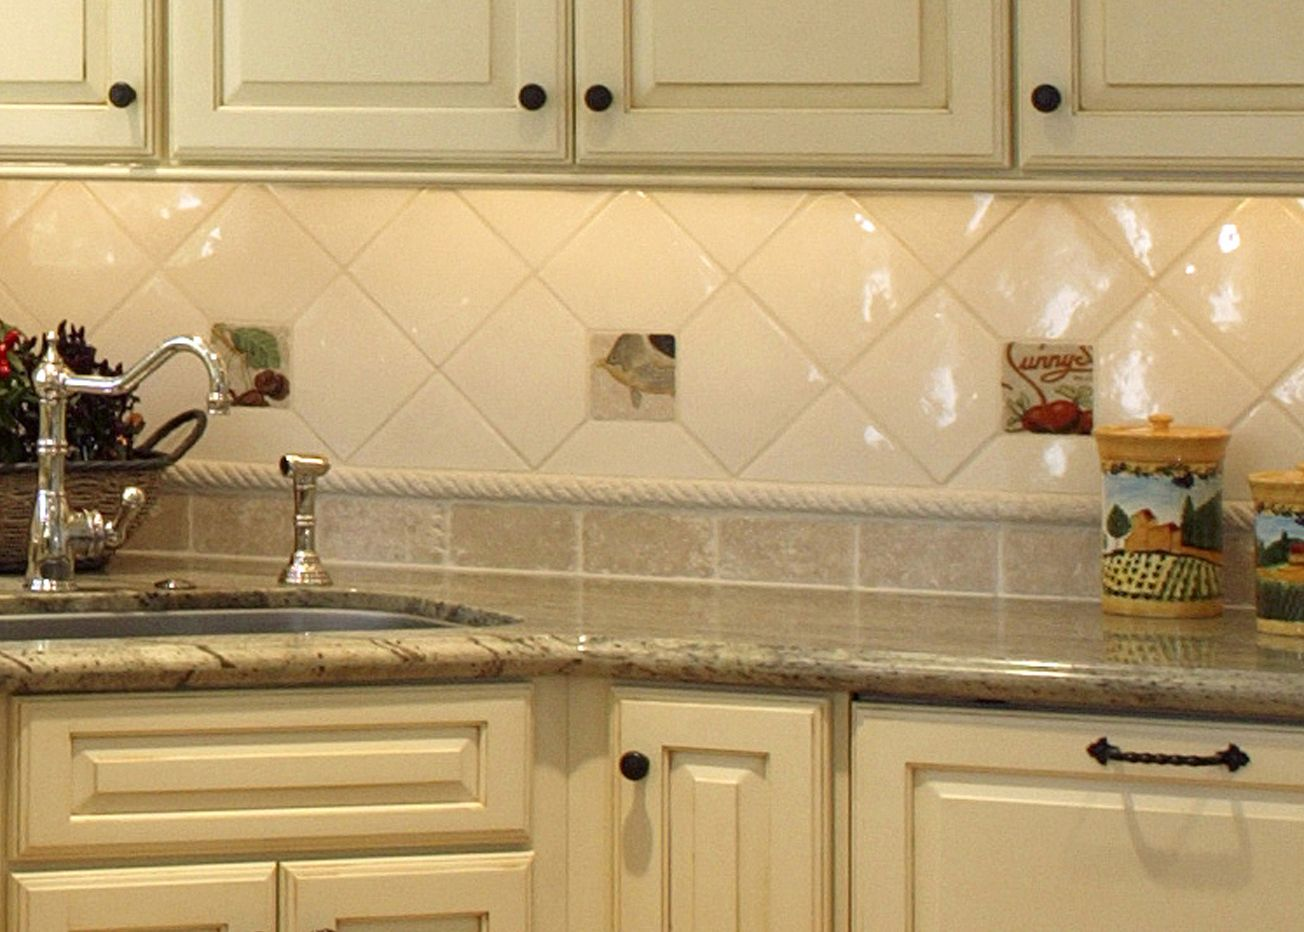 kitchen tile design ideas tile design kitchen alluring kitchen kitchen tile designs - Wall Design Tiles